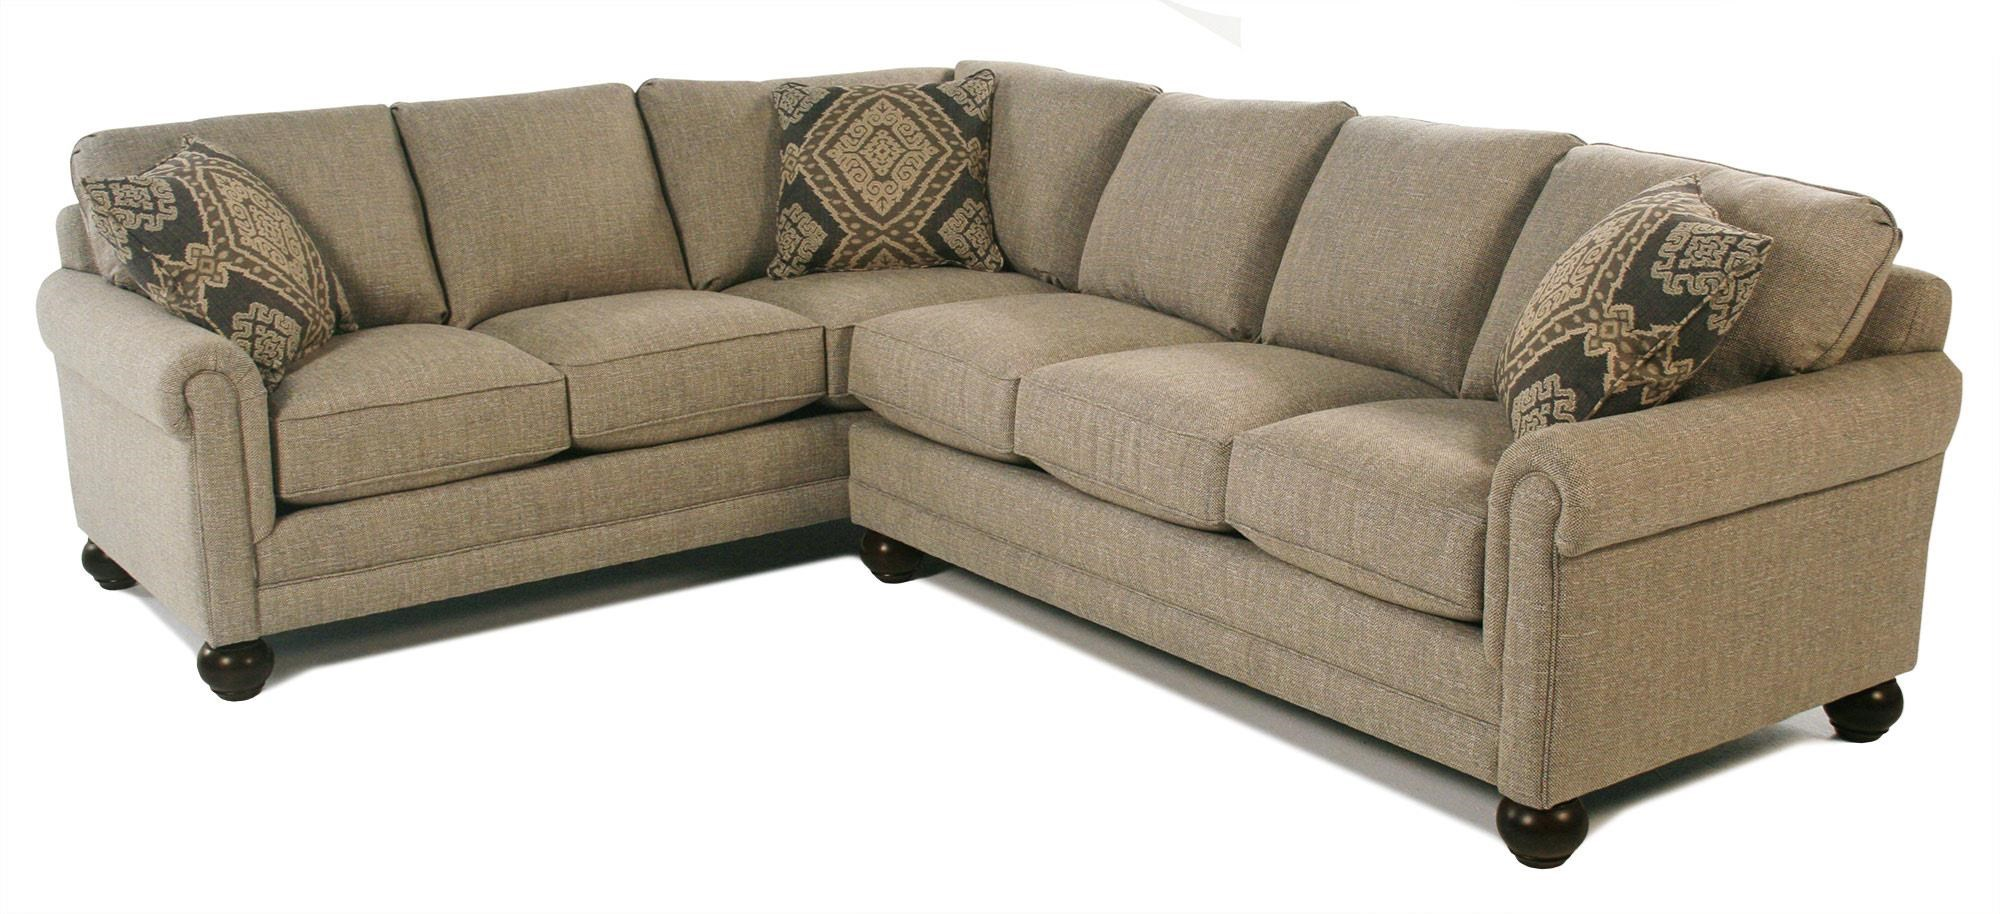 Bassett Custom Upholstery - Loft 2 Piece Sectional - Item Number: 8000-66F+61F-1449-19FOG